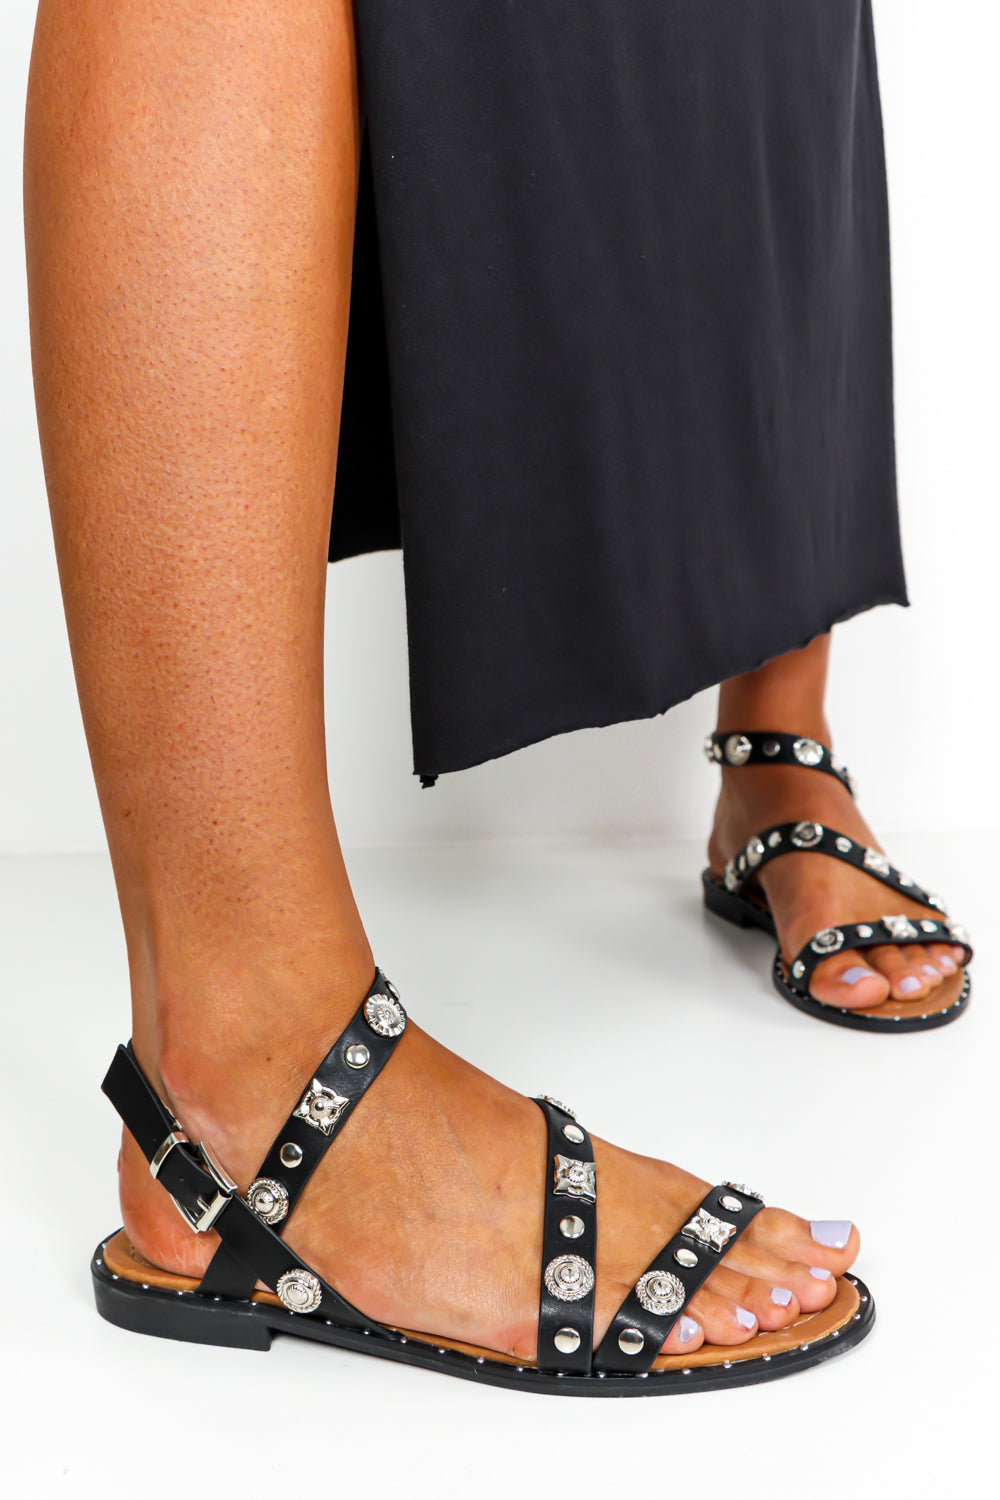 Black Silver Stud Strappy Sandals DLSB Womens Fashion